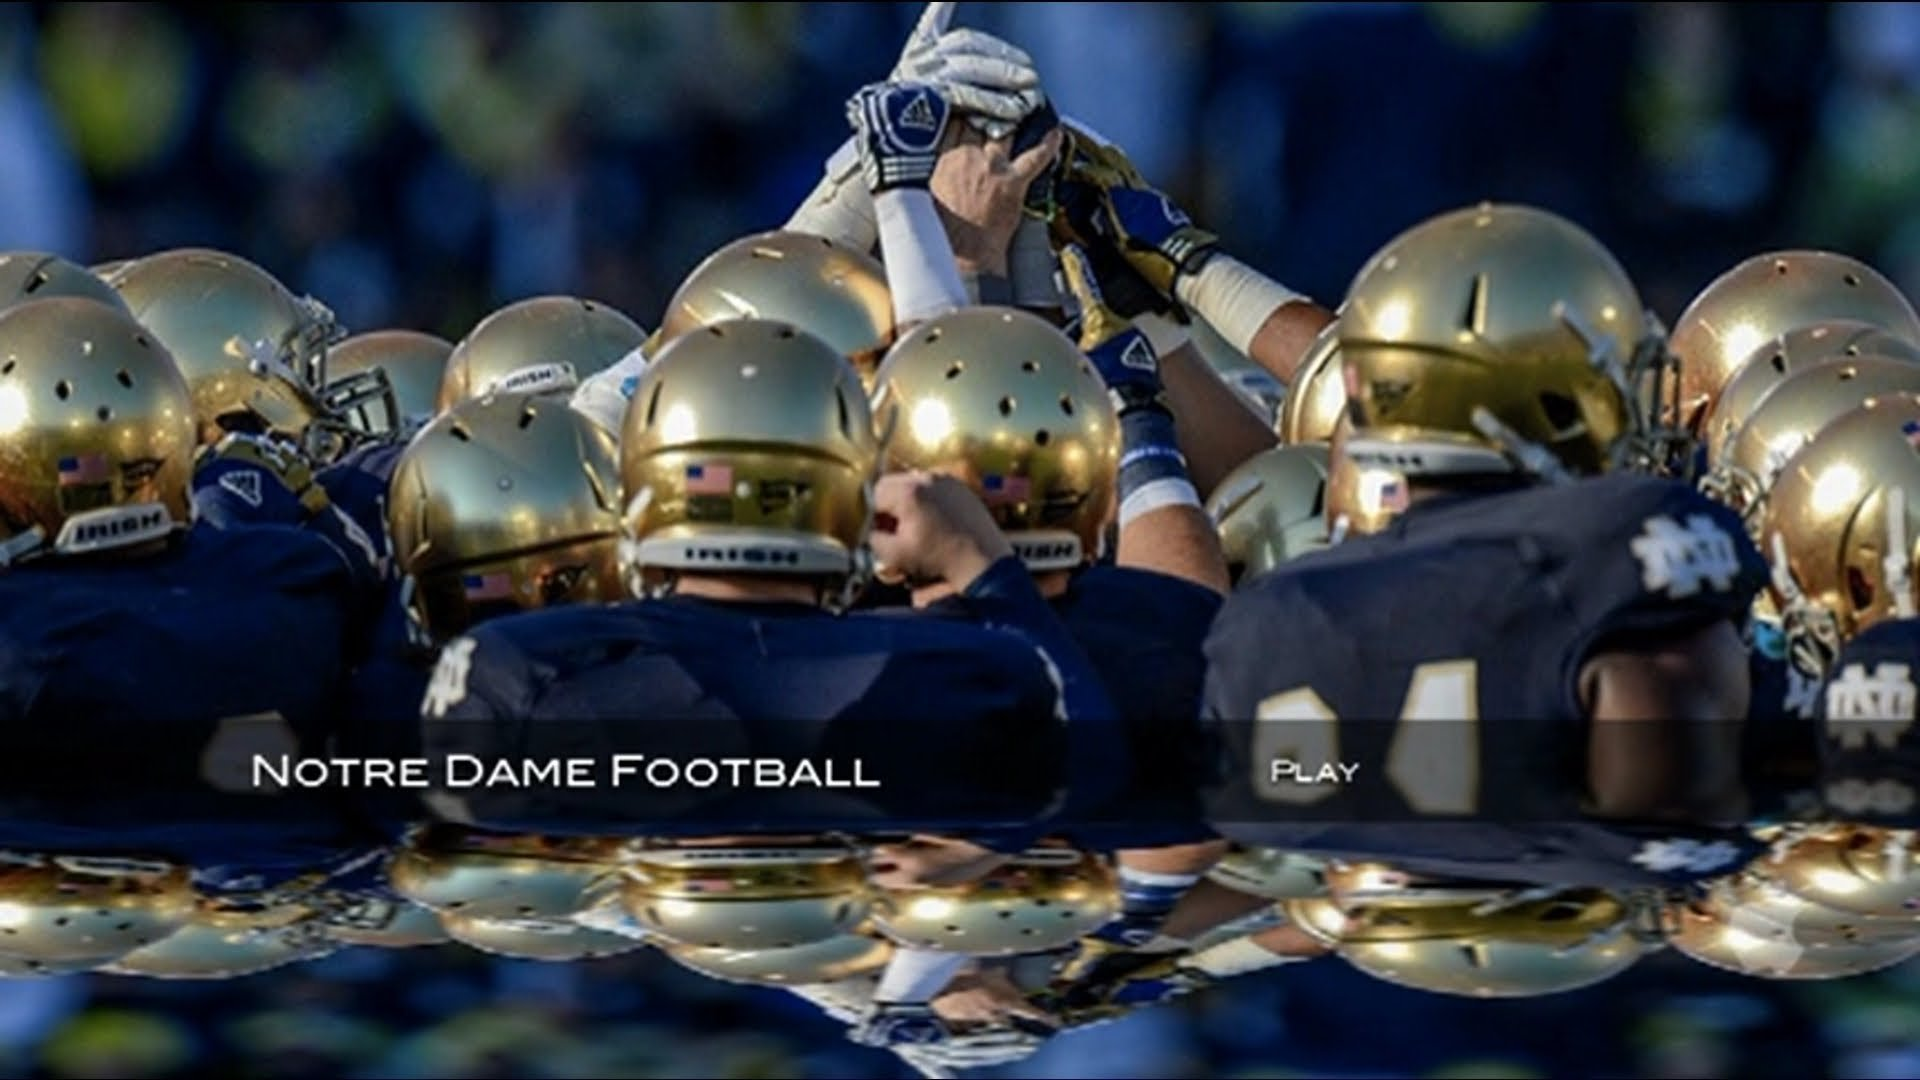 Notre dame football wallpaper 1280x1024 wallpapersafari - Notre dame football wallpaper ...